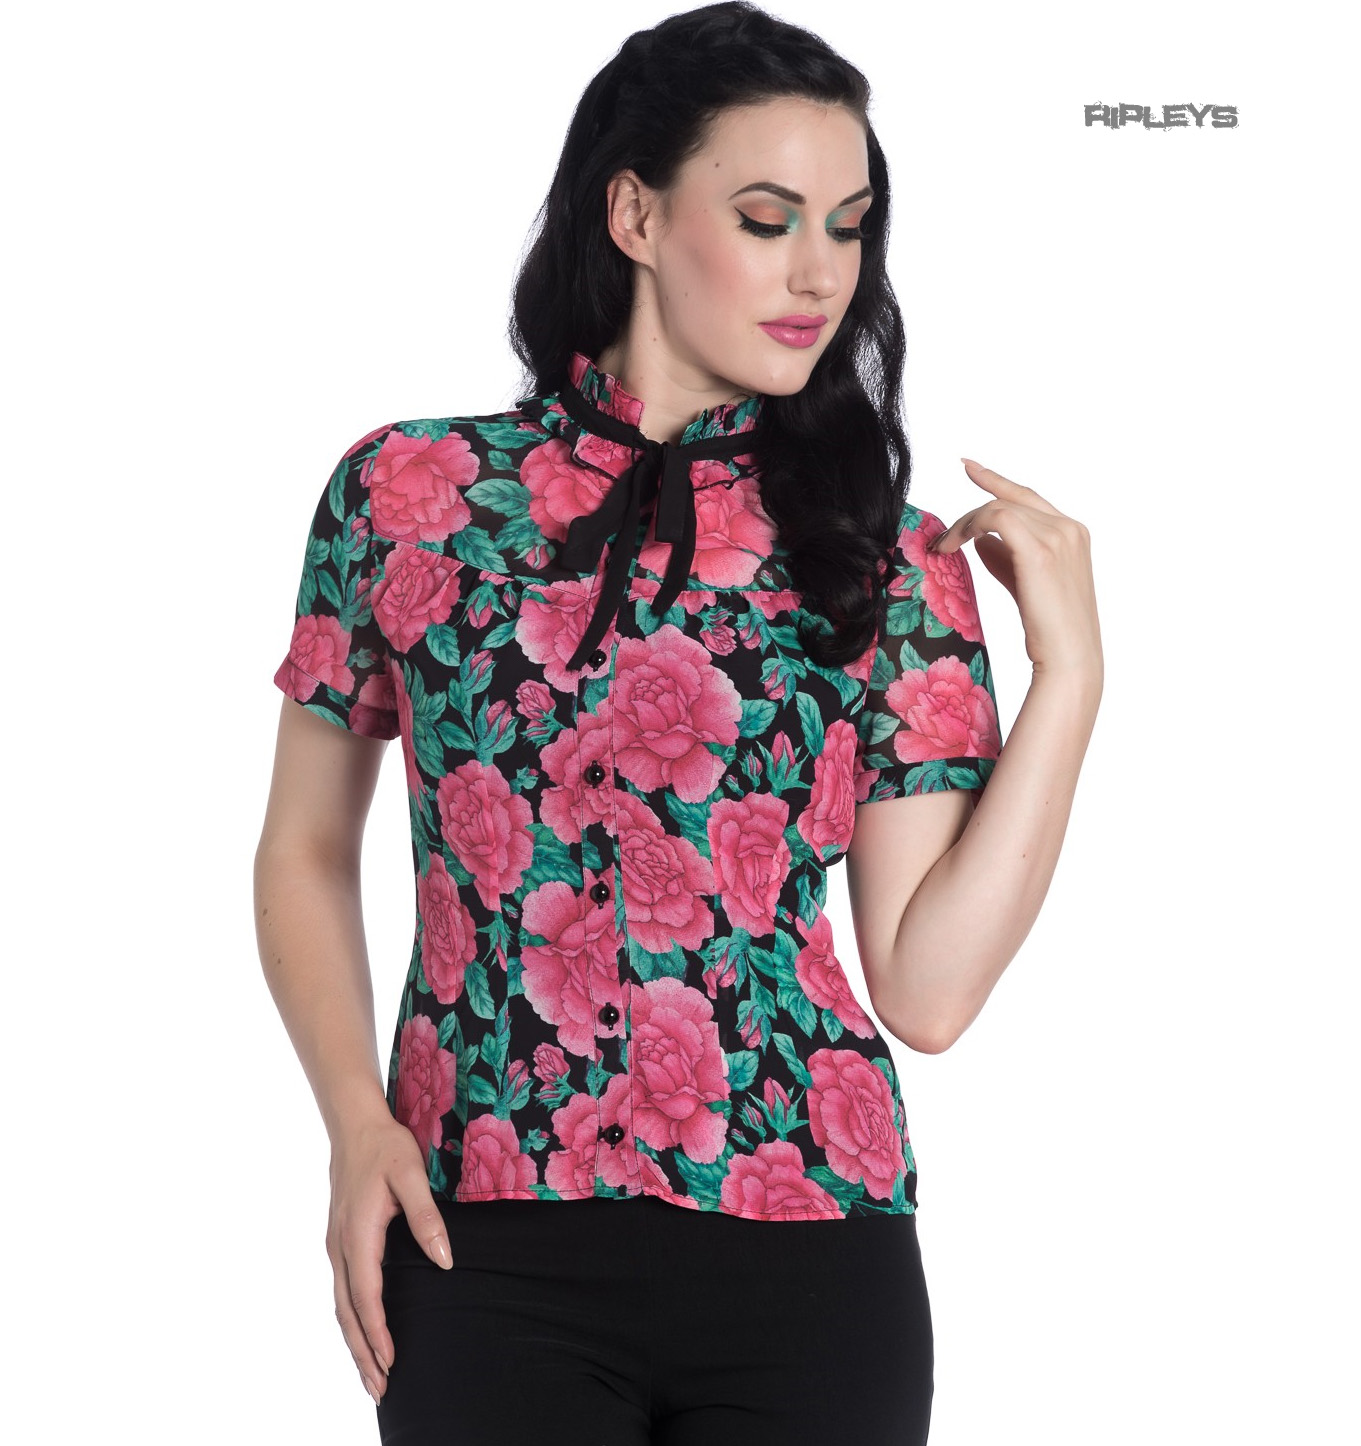 Hell-Bunny-Shirt-Top-Flowers-Roses-EDEN-ROSE-Black-Pink-Blouse-All-Sizes thumbnail 22